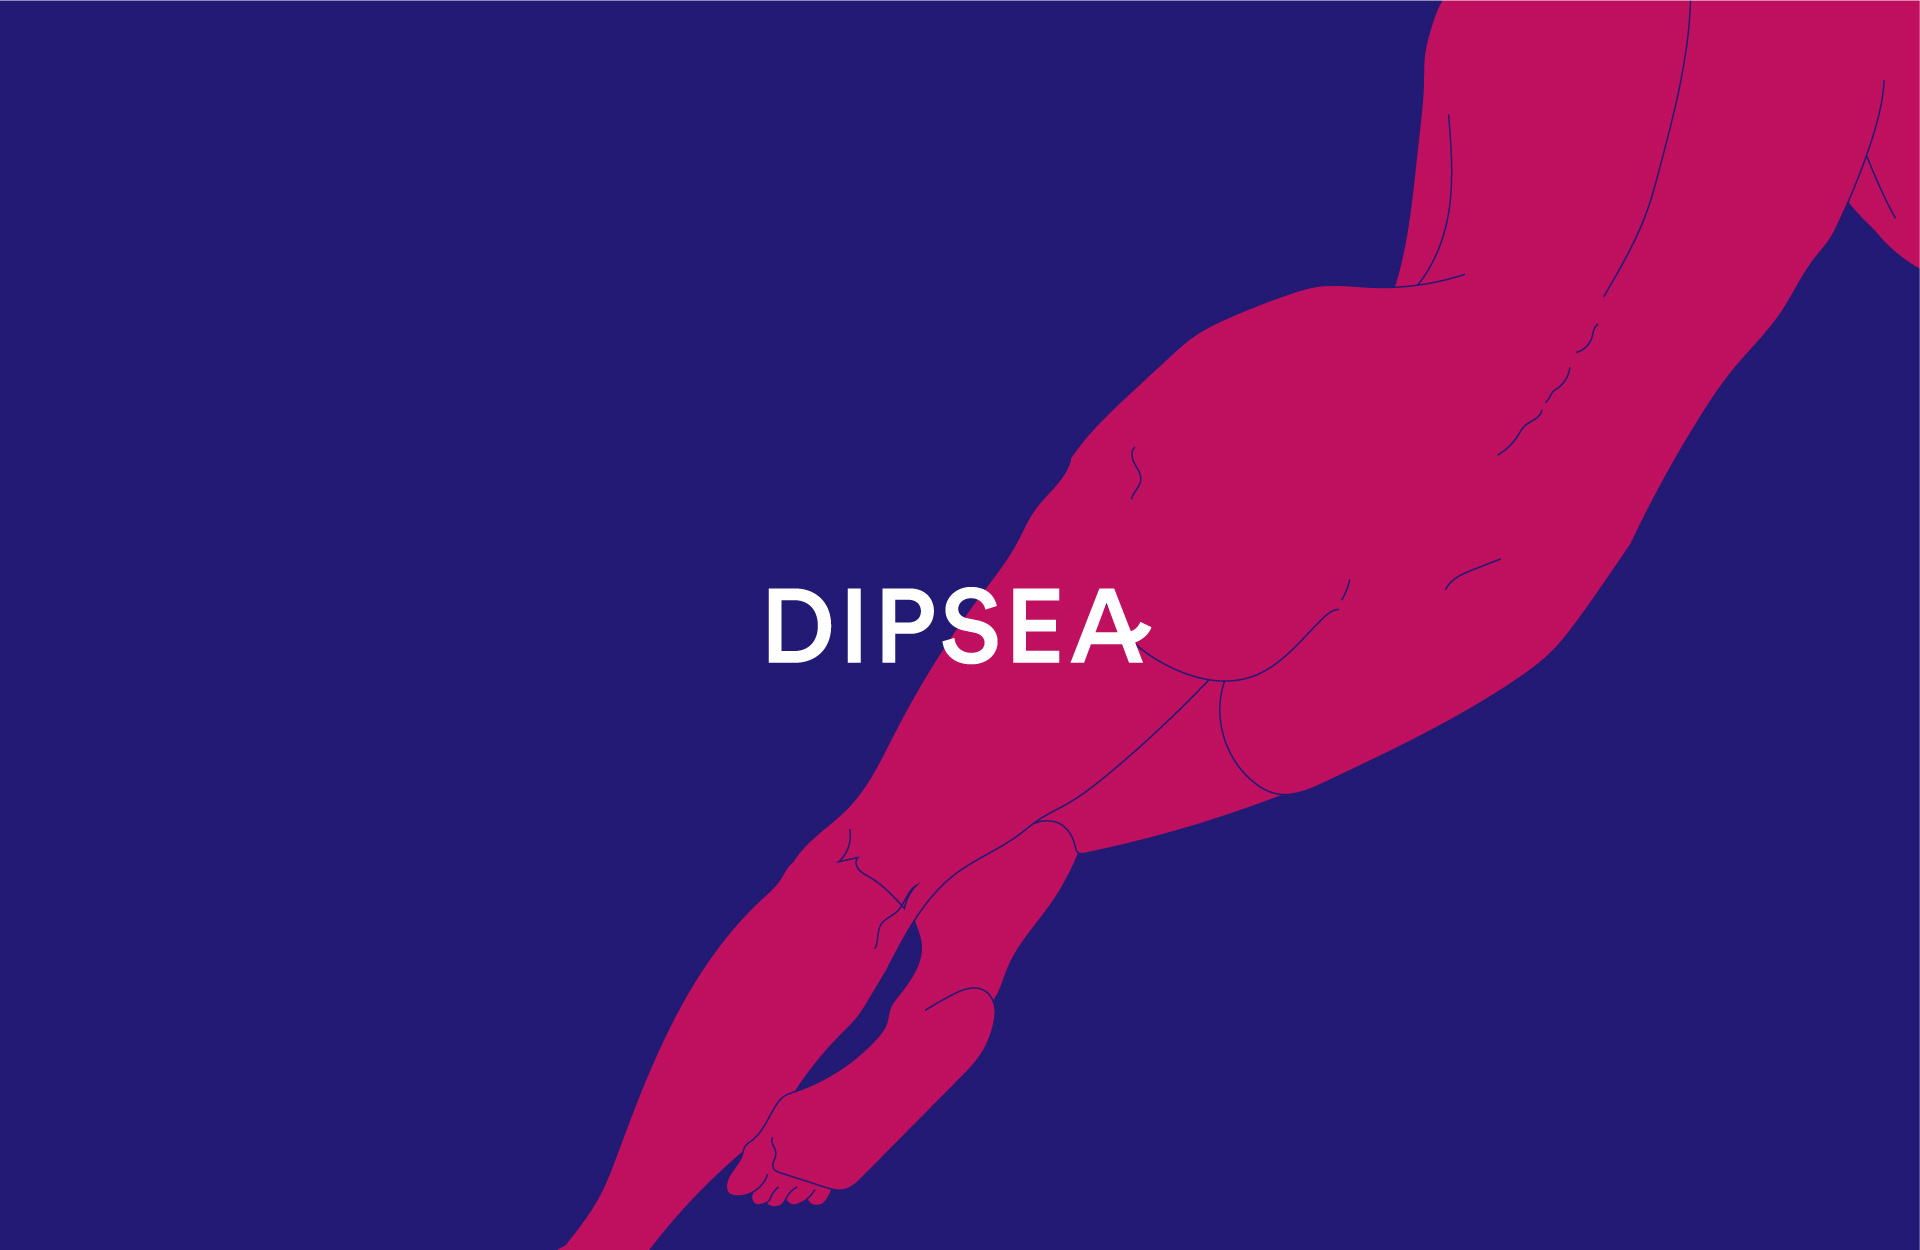 Dipsea_Logo+Illustration